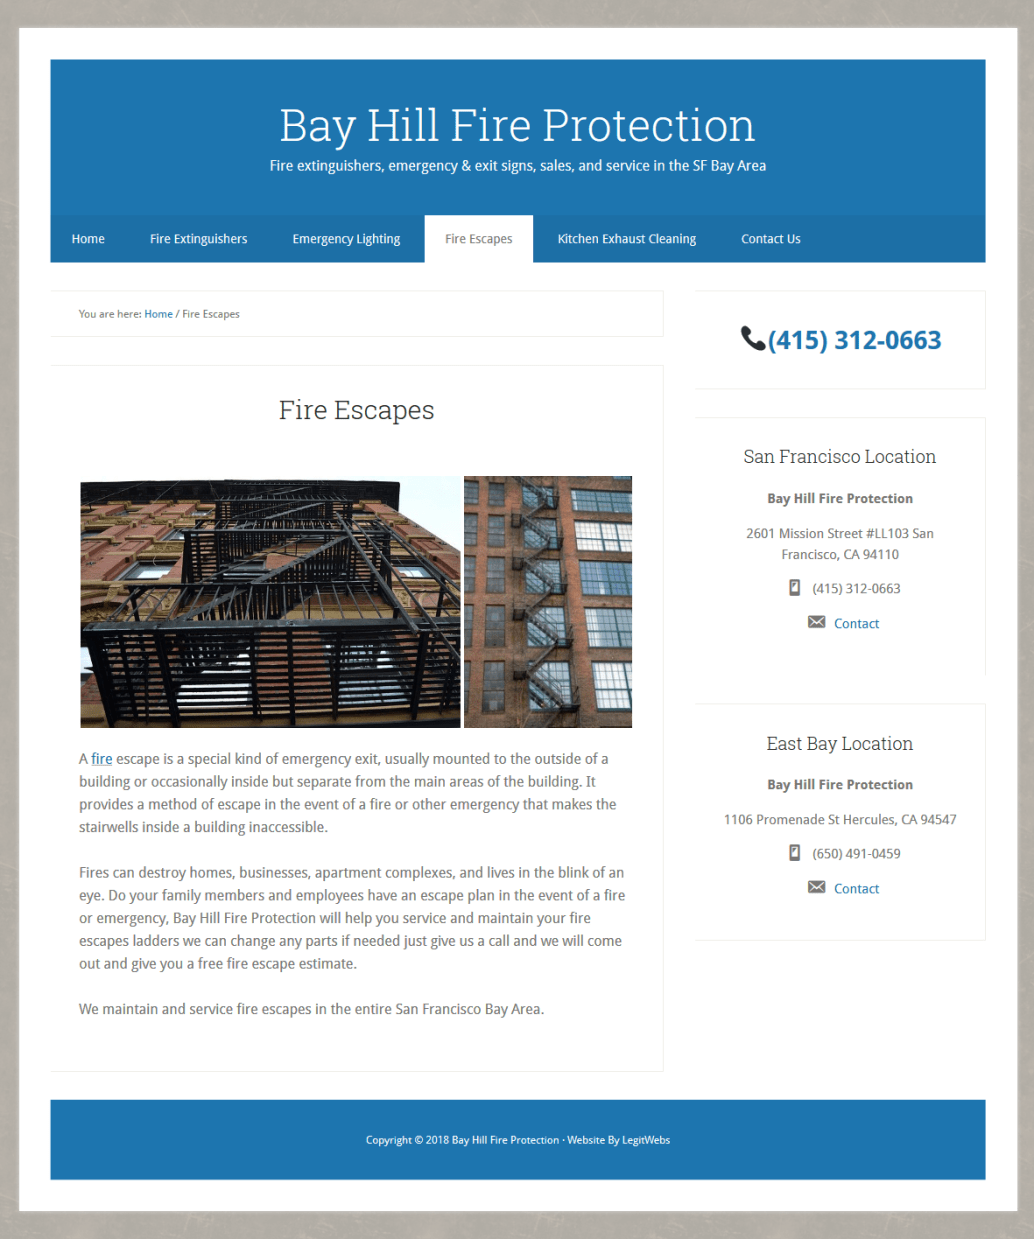 BayHill-Home-Fire-Escapes